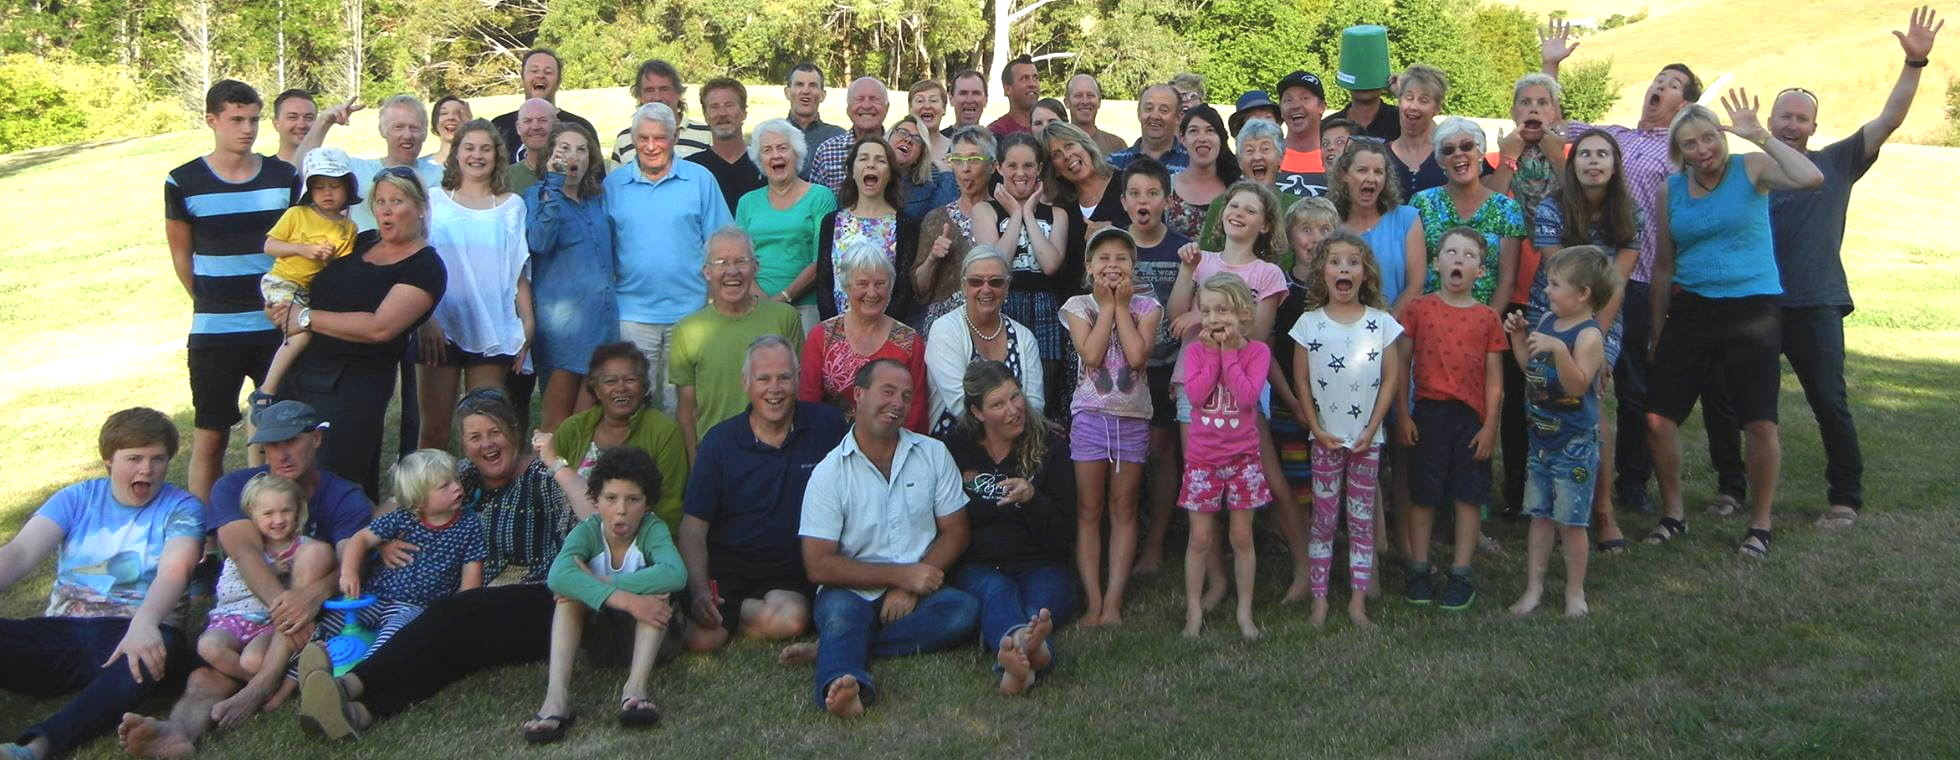 family-reunion-2016-crop-edit